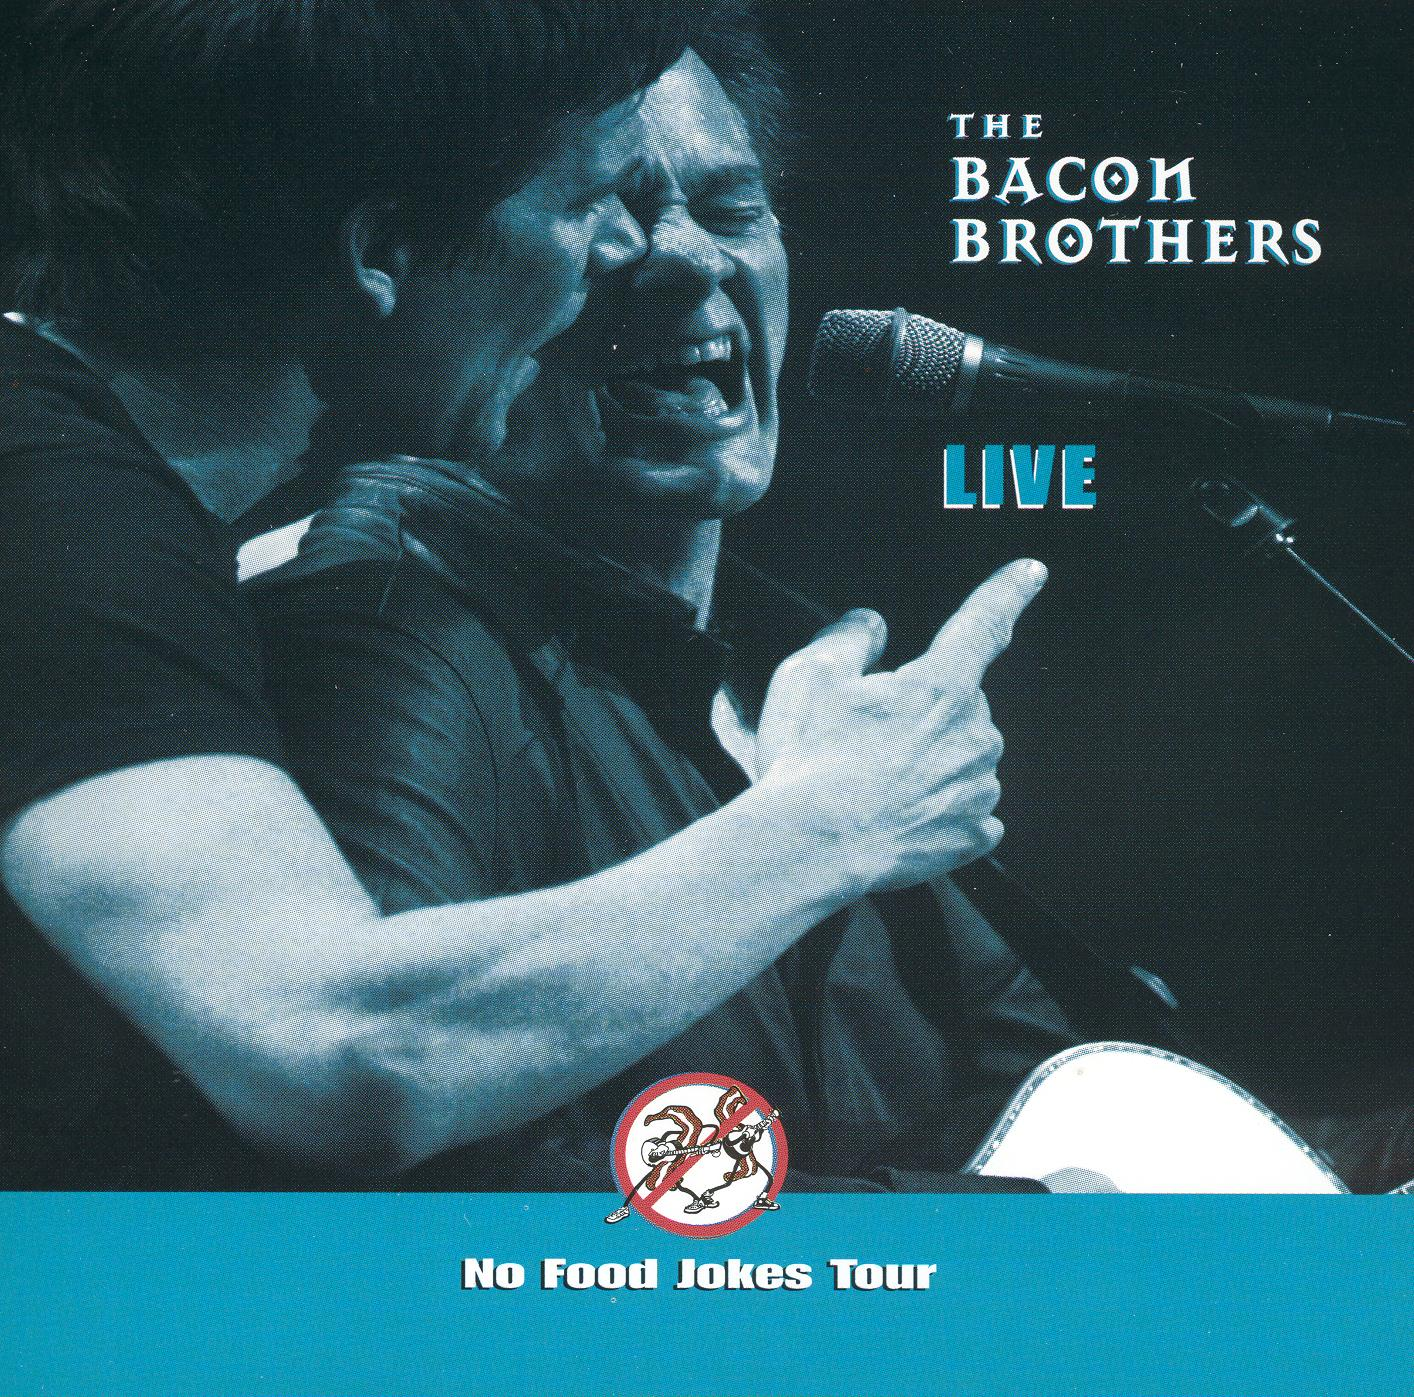 The Bacon Brothers Live: No Food Jokes Tour